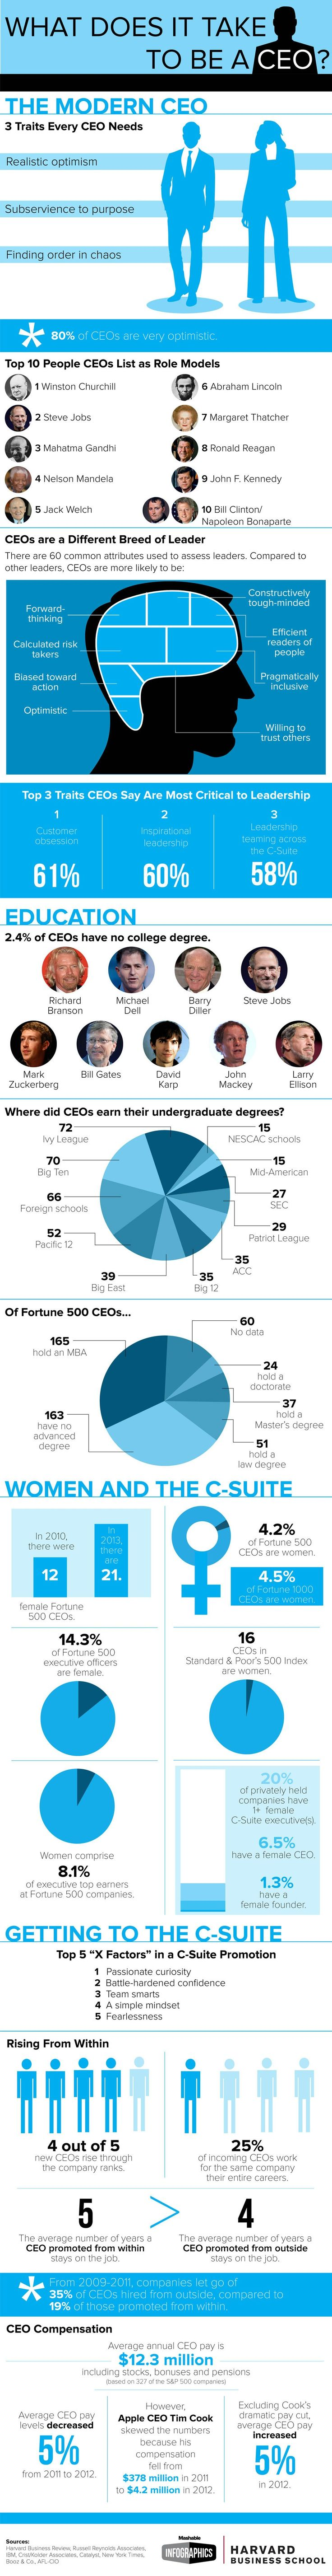 What Does it Take to Be a CEO? #infographic #Entrepreneur #CEO